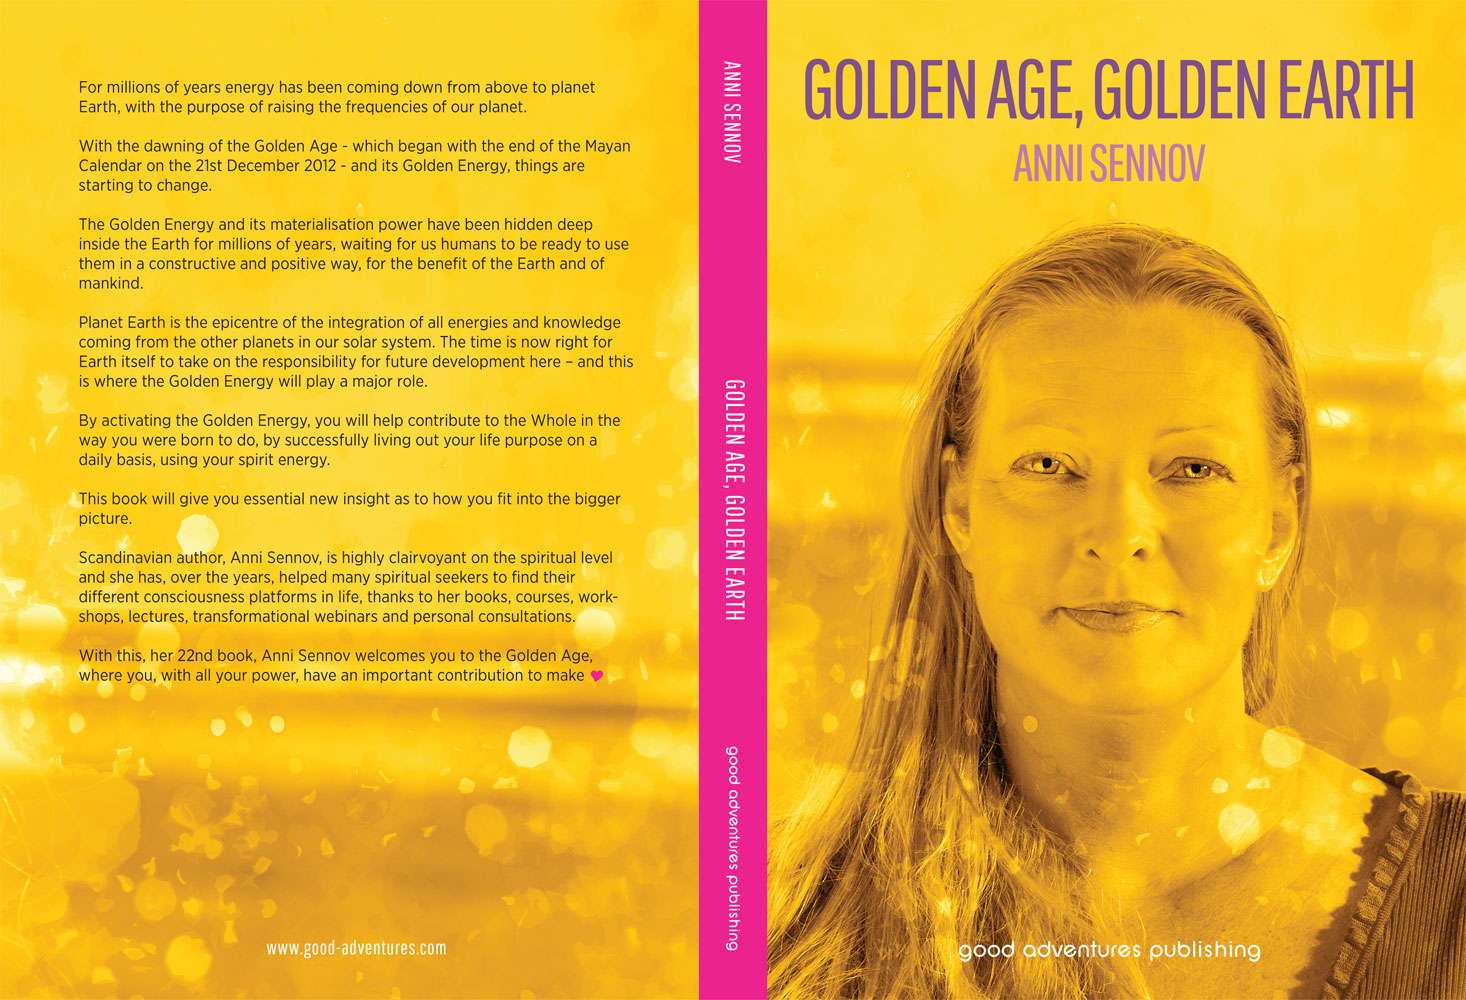 Golden Age, Golden Earth